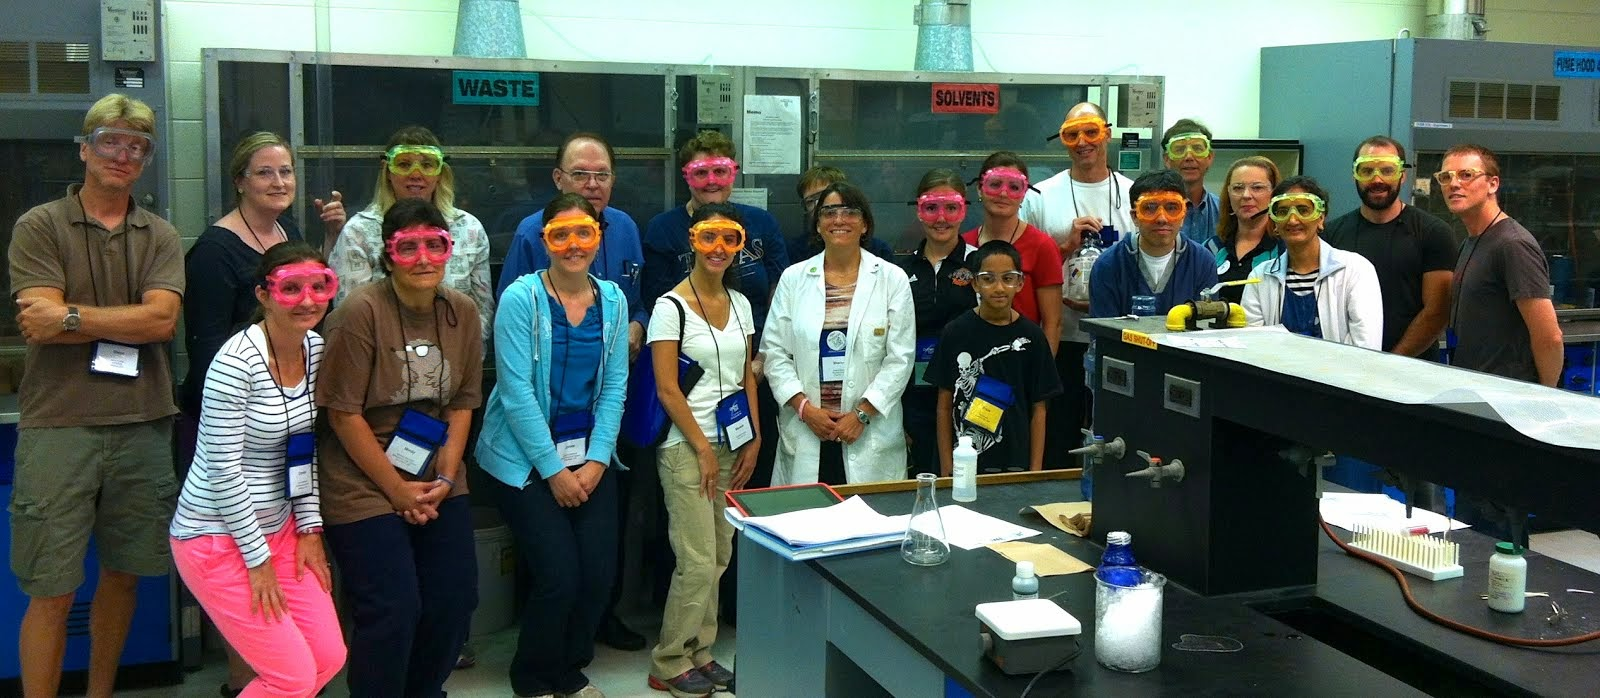 ChemEd13 Reactions Workshop